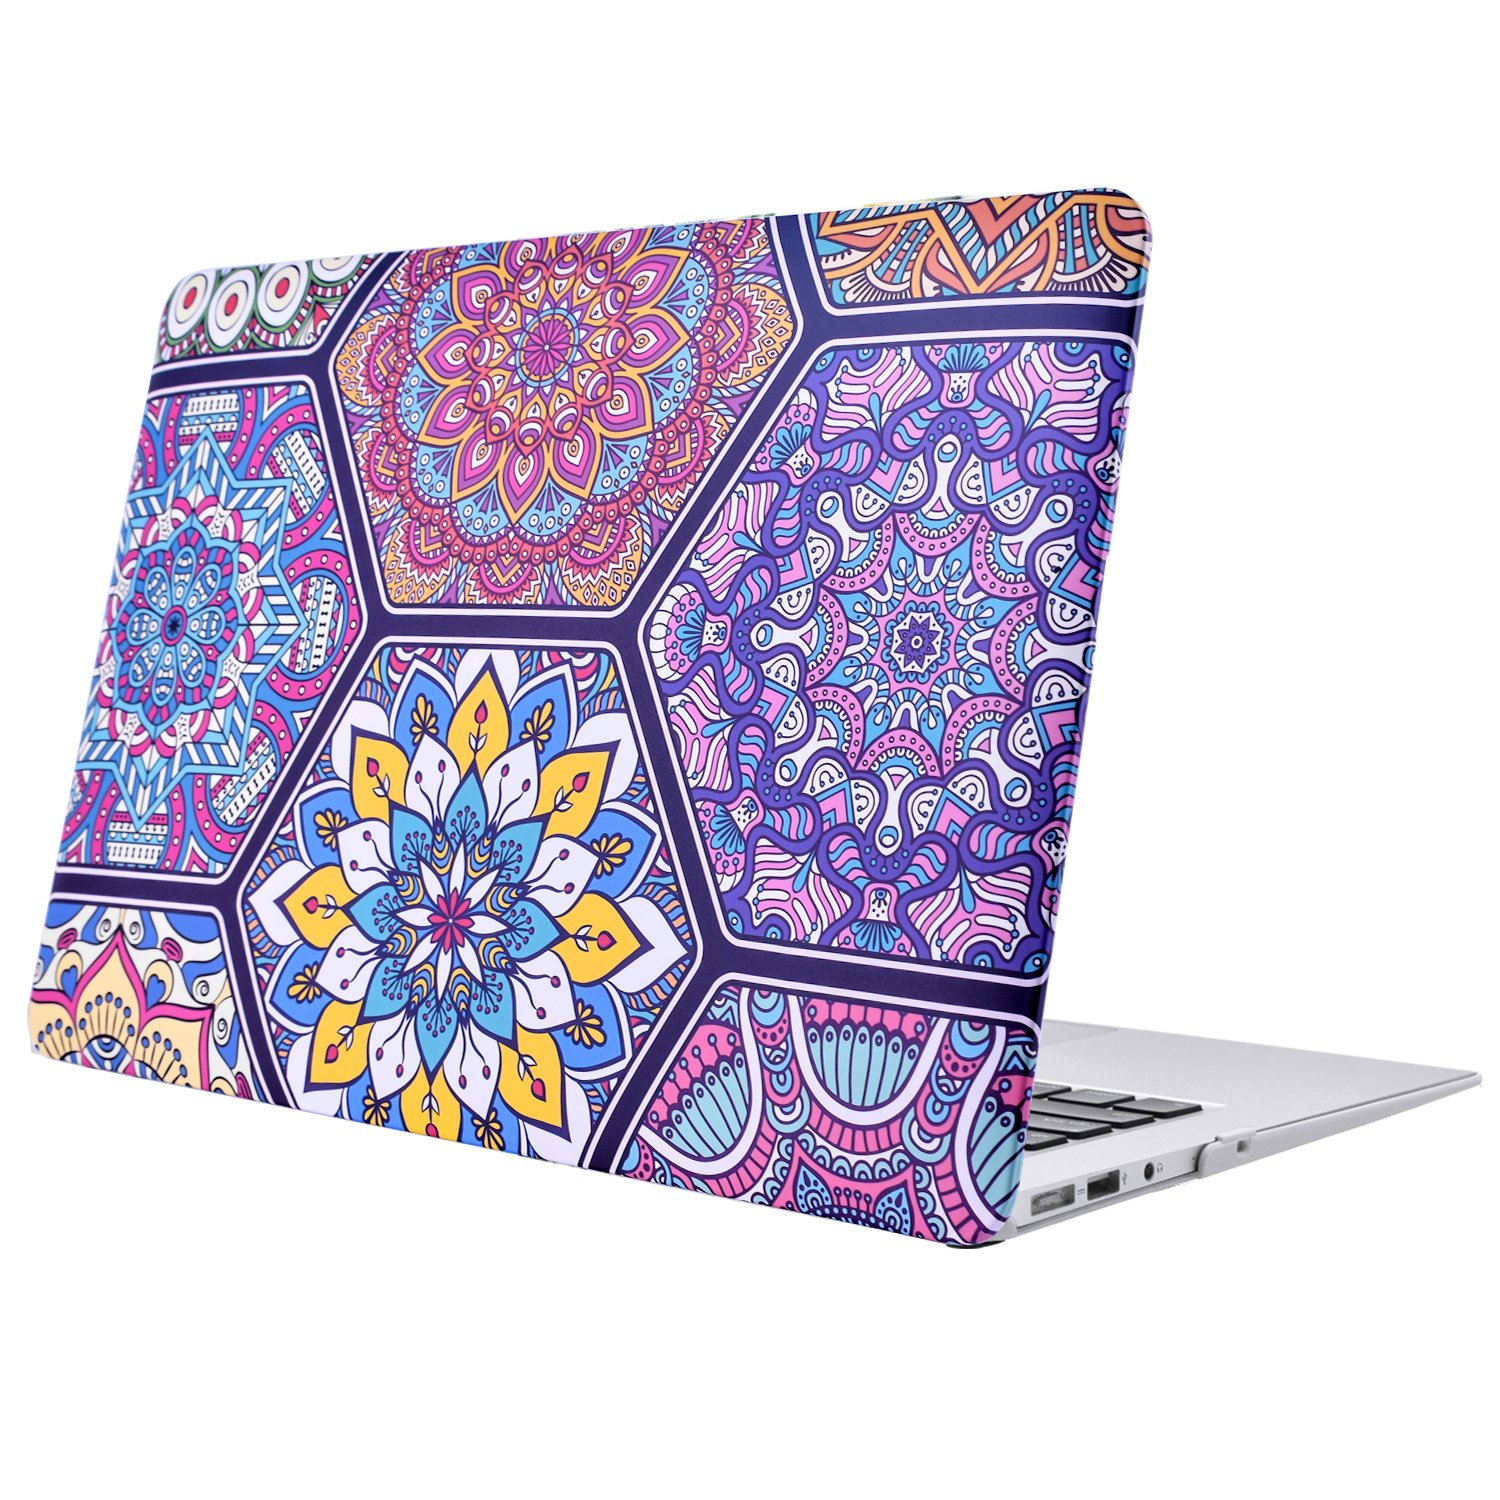 Hard Plastic Protective Case Soft-Touch for Apple MacBook Air 13 Inch Model A1369 and A1466 2012-1017 Art